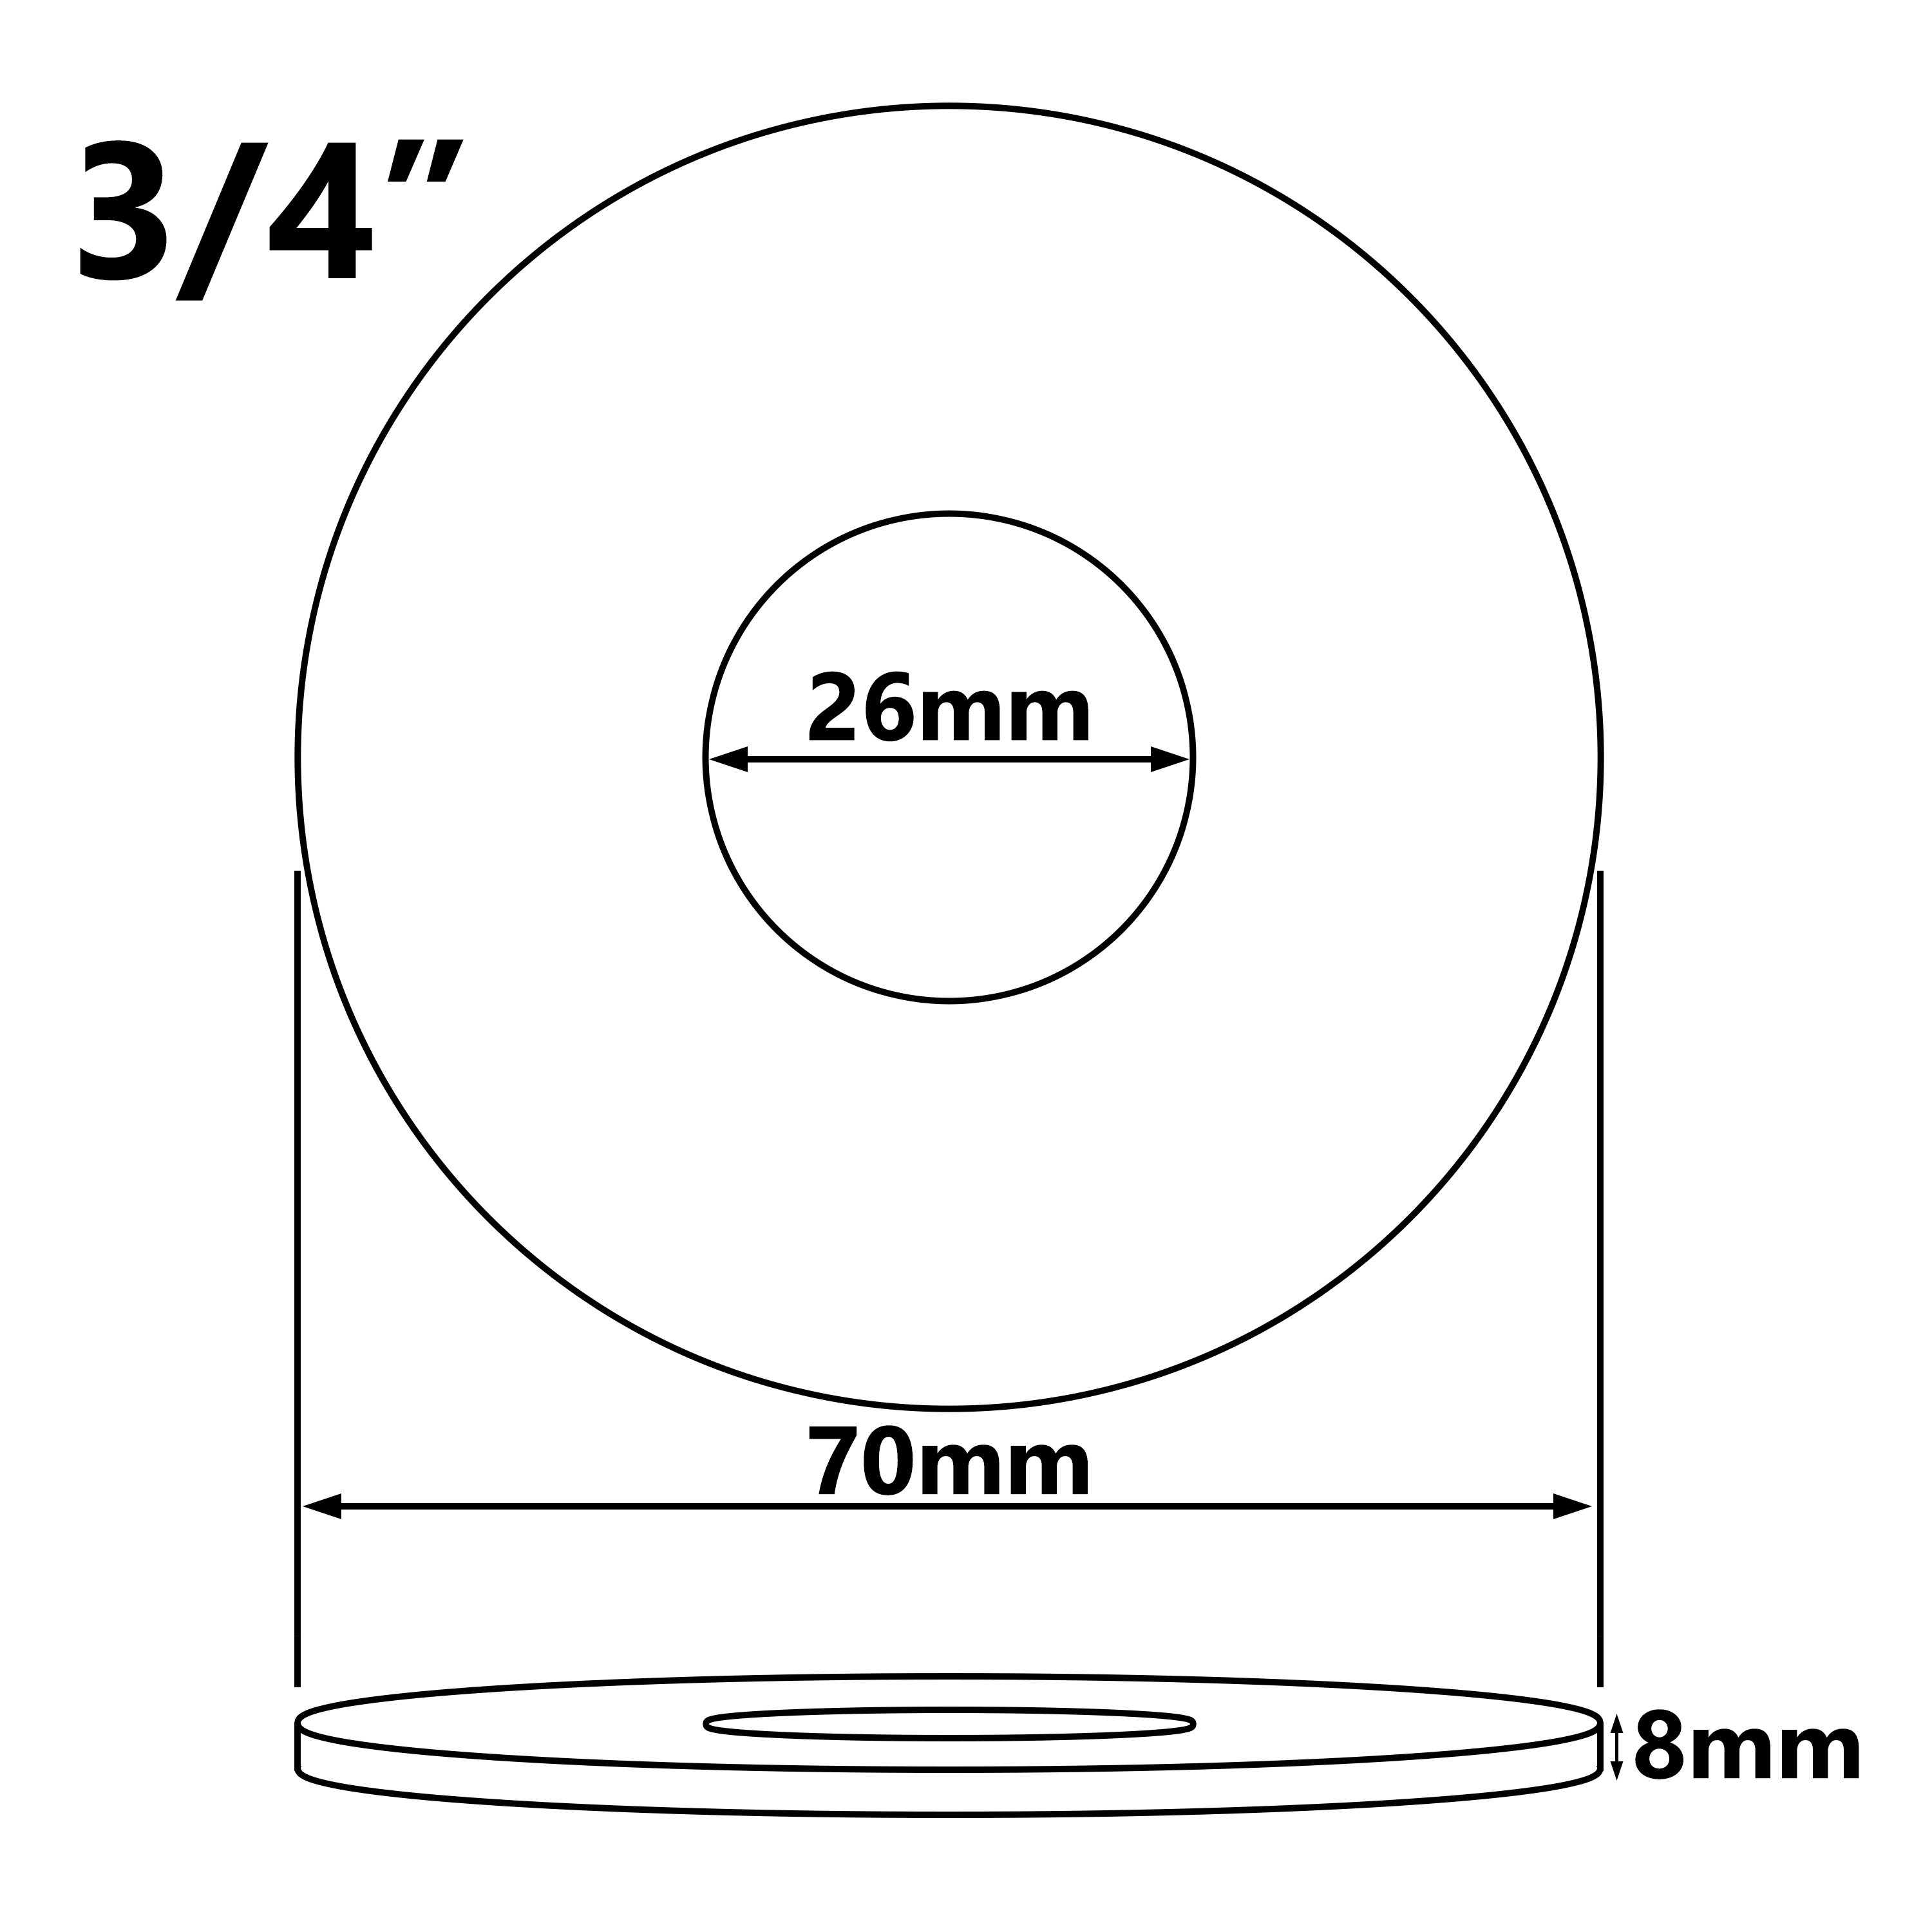 26mm (3/4 Inch) Collar Chrome Plated Steel Valve Tall Hole Cover Tap Rose 8mm Height